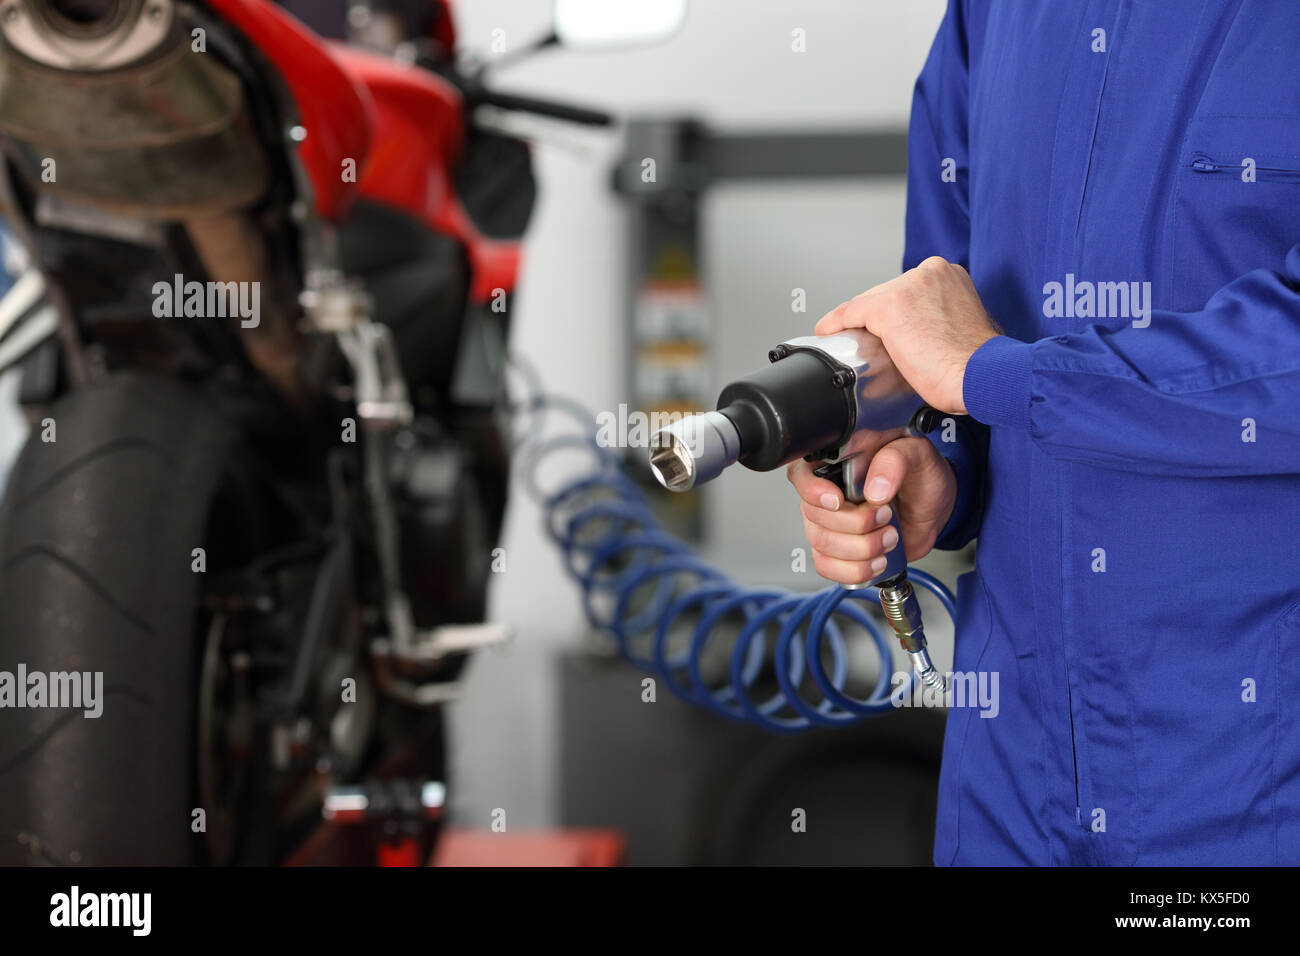 Close up of a motorcycle mechanic hand holding a pneumatic gun in a mechanical workshop - Stock Image